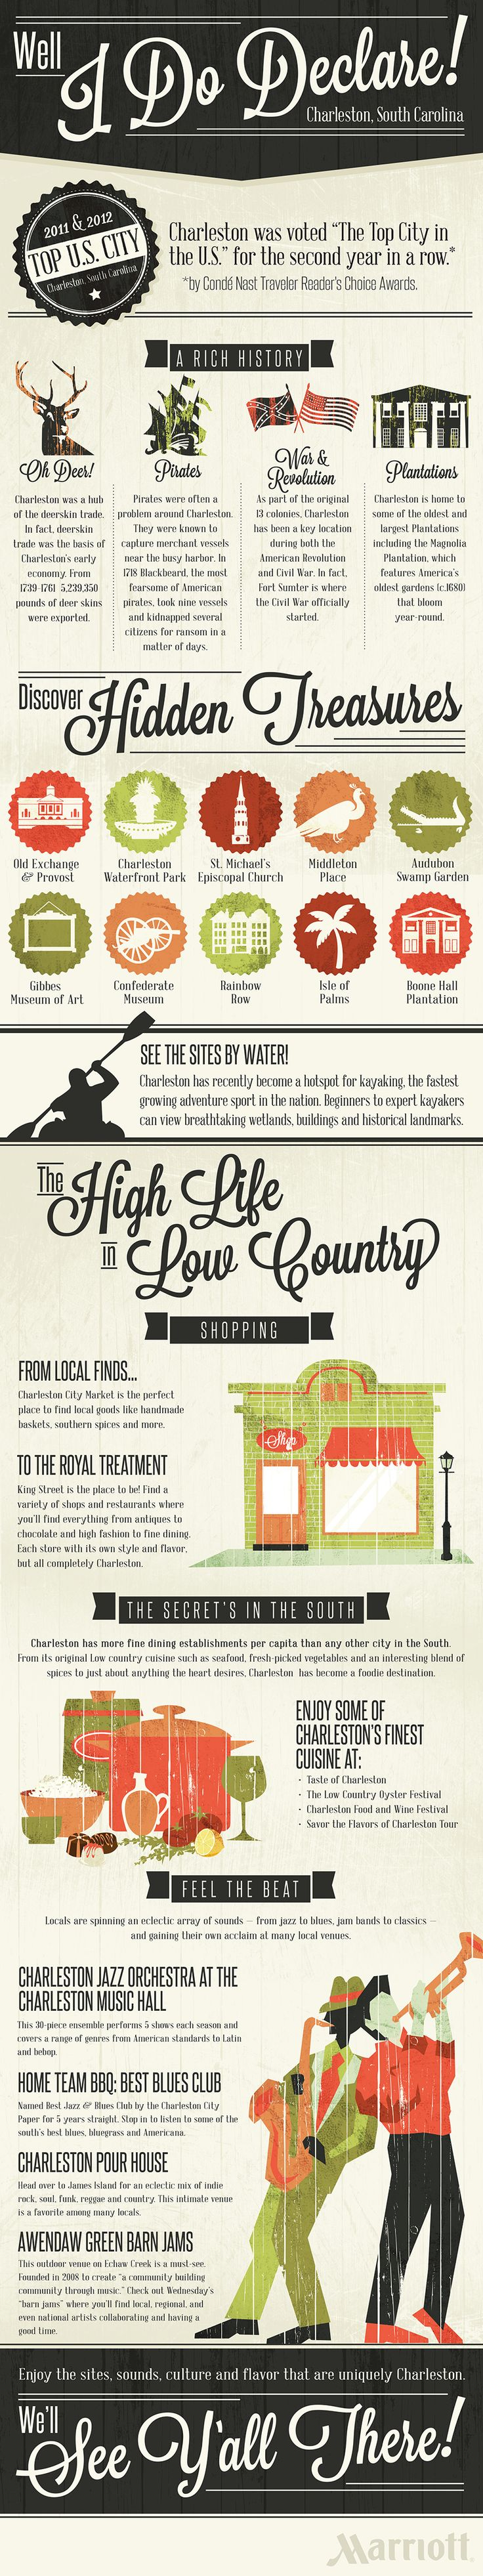 I DO declare! Charleston, South Carolina is a wonderful city. #travel #infographic